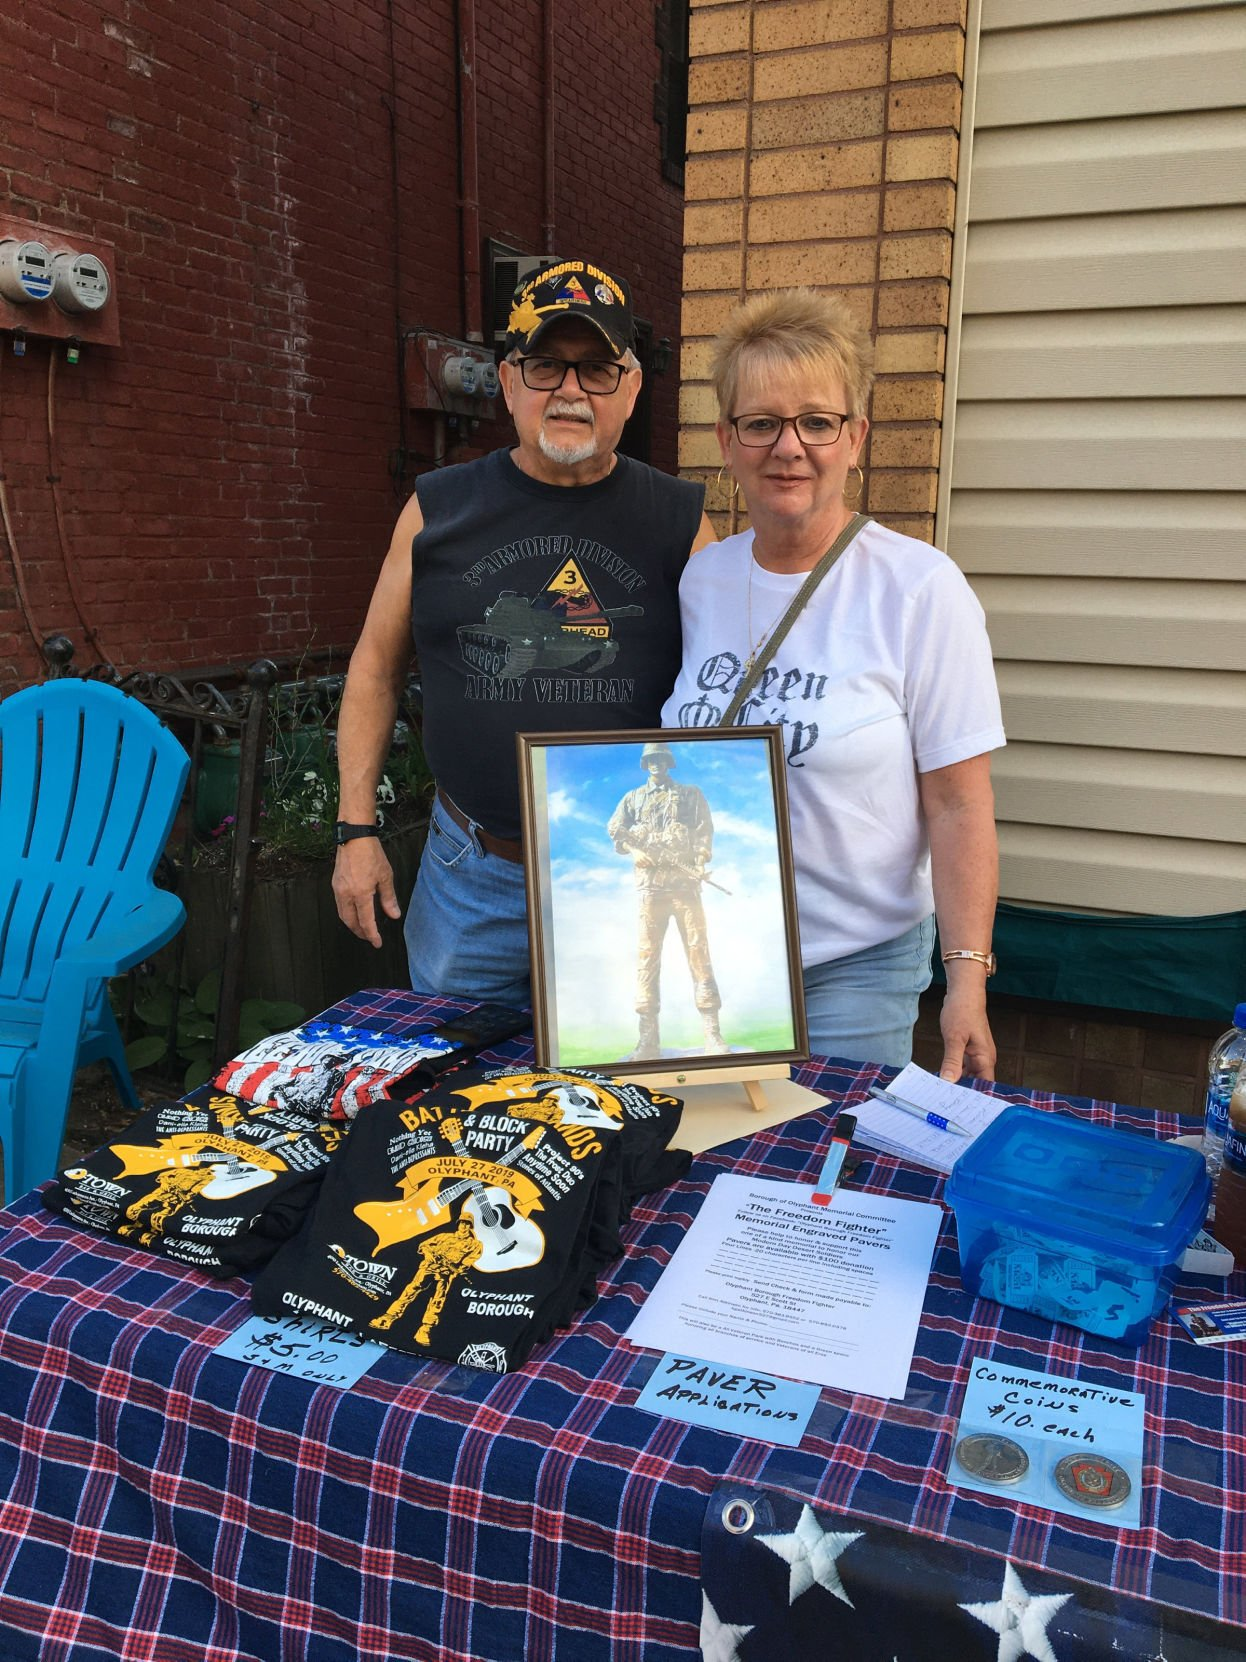 Third Thursday showcases Olyphant's offerings